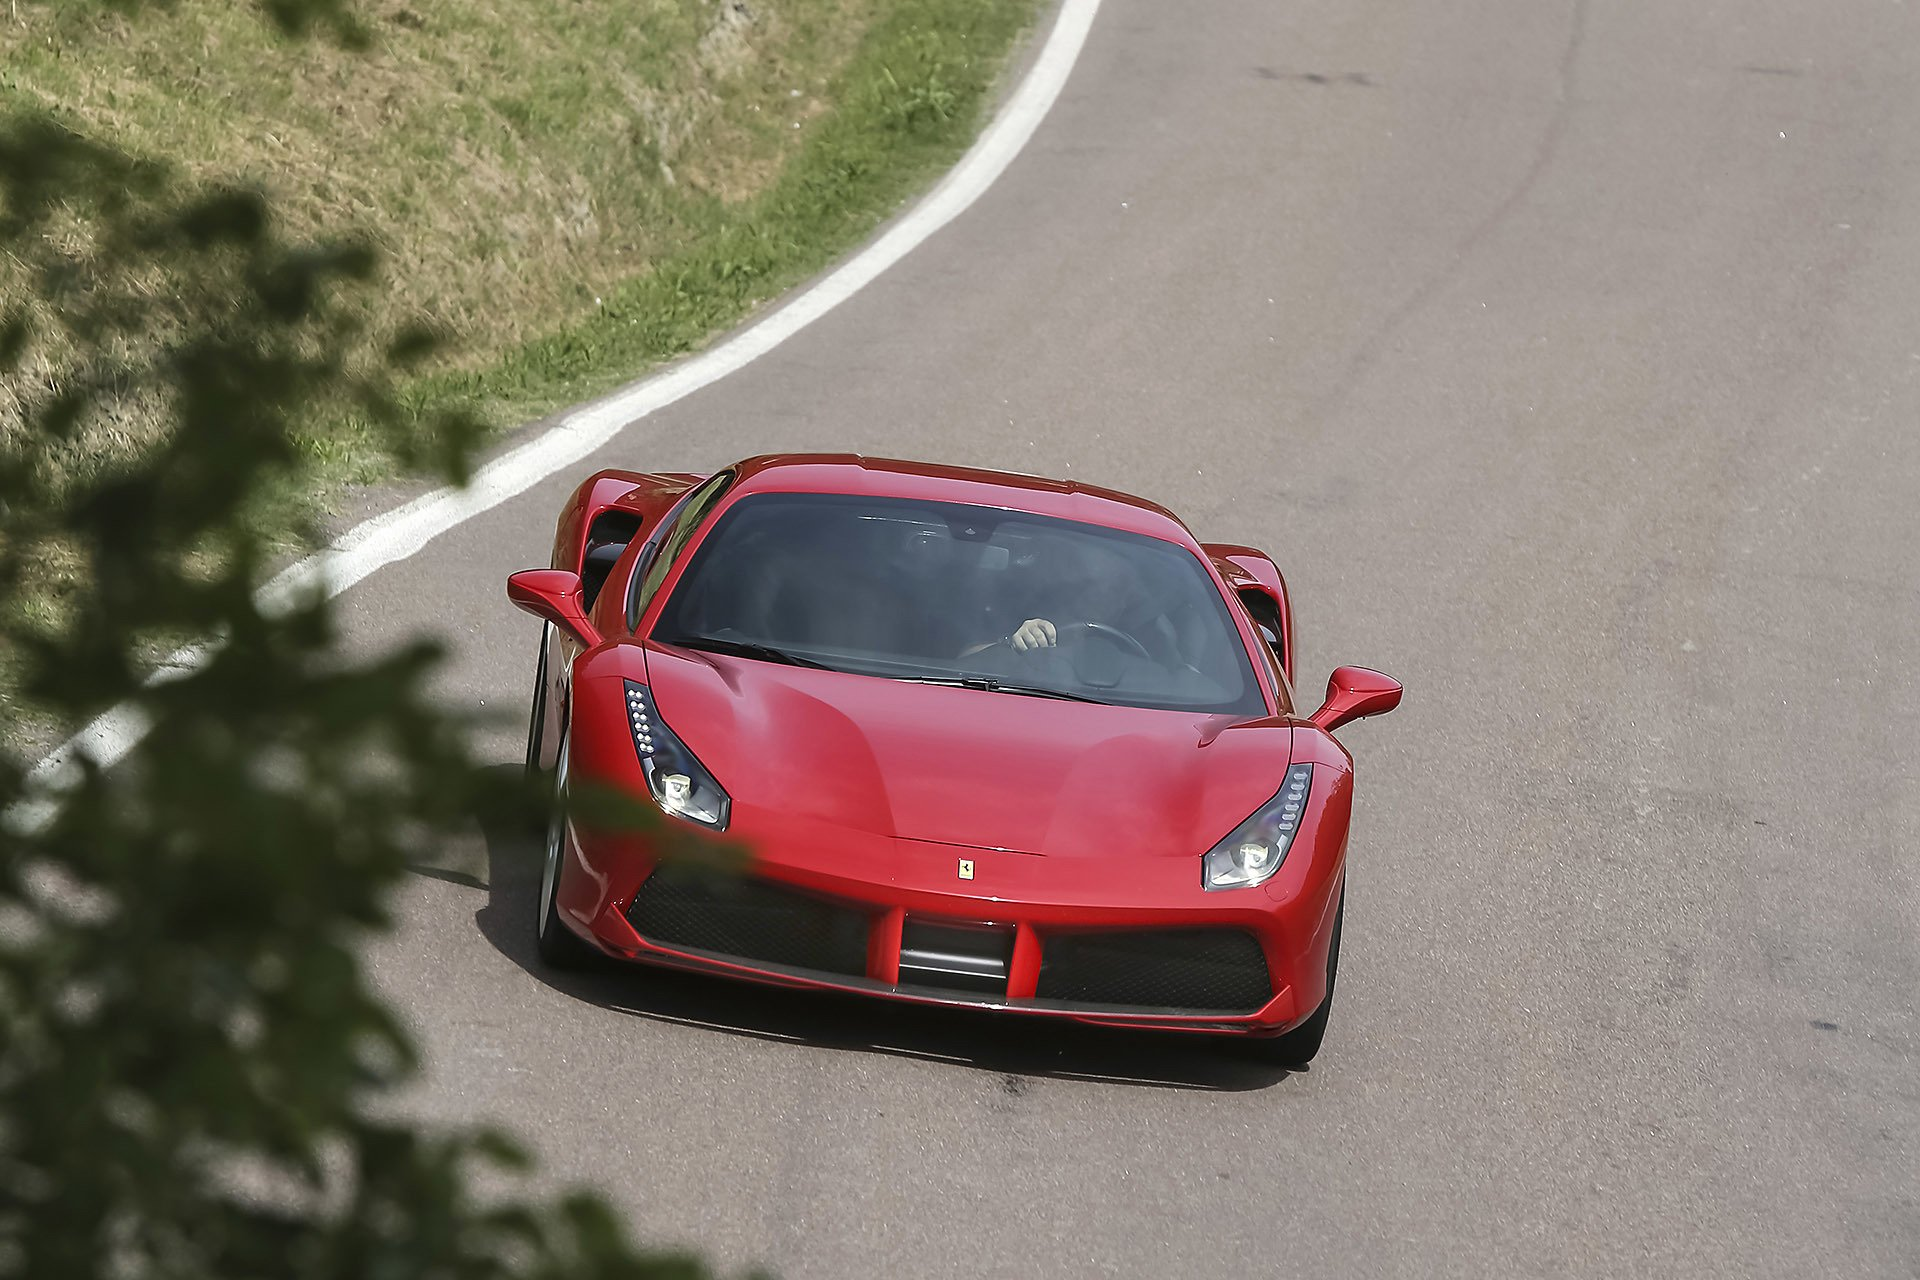 2016 ferrari 488 gtb cars coupe red wallpaper 1920x1280 712317 wallpaperup - Ferrari 488 Iphone Wallpaper